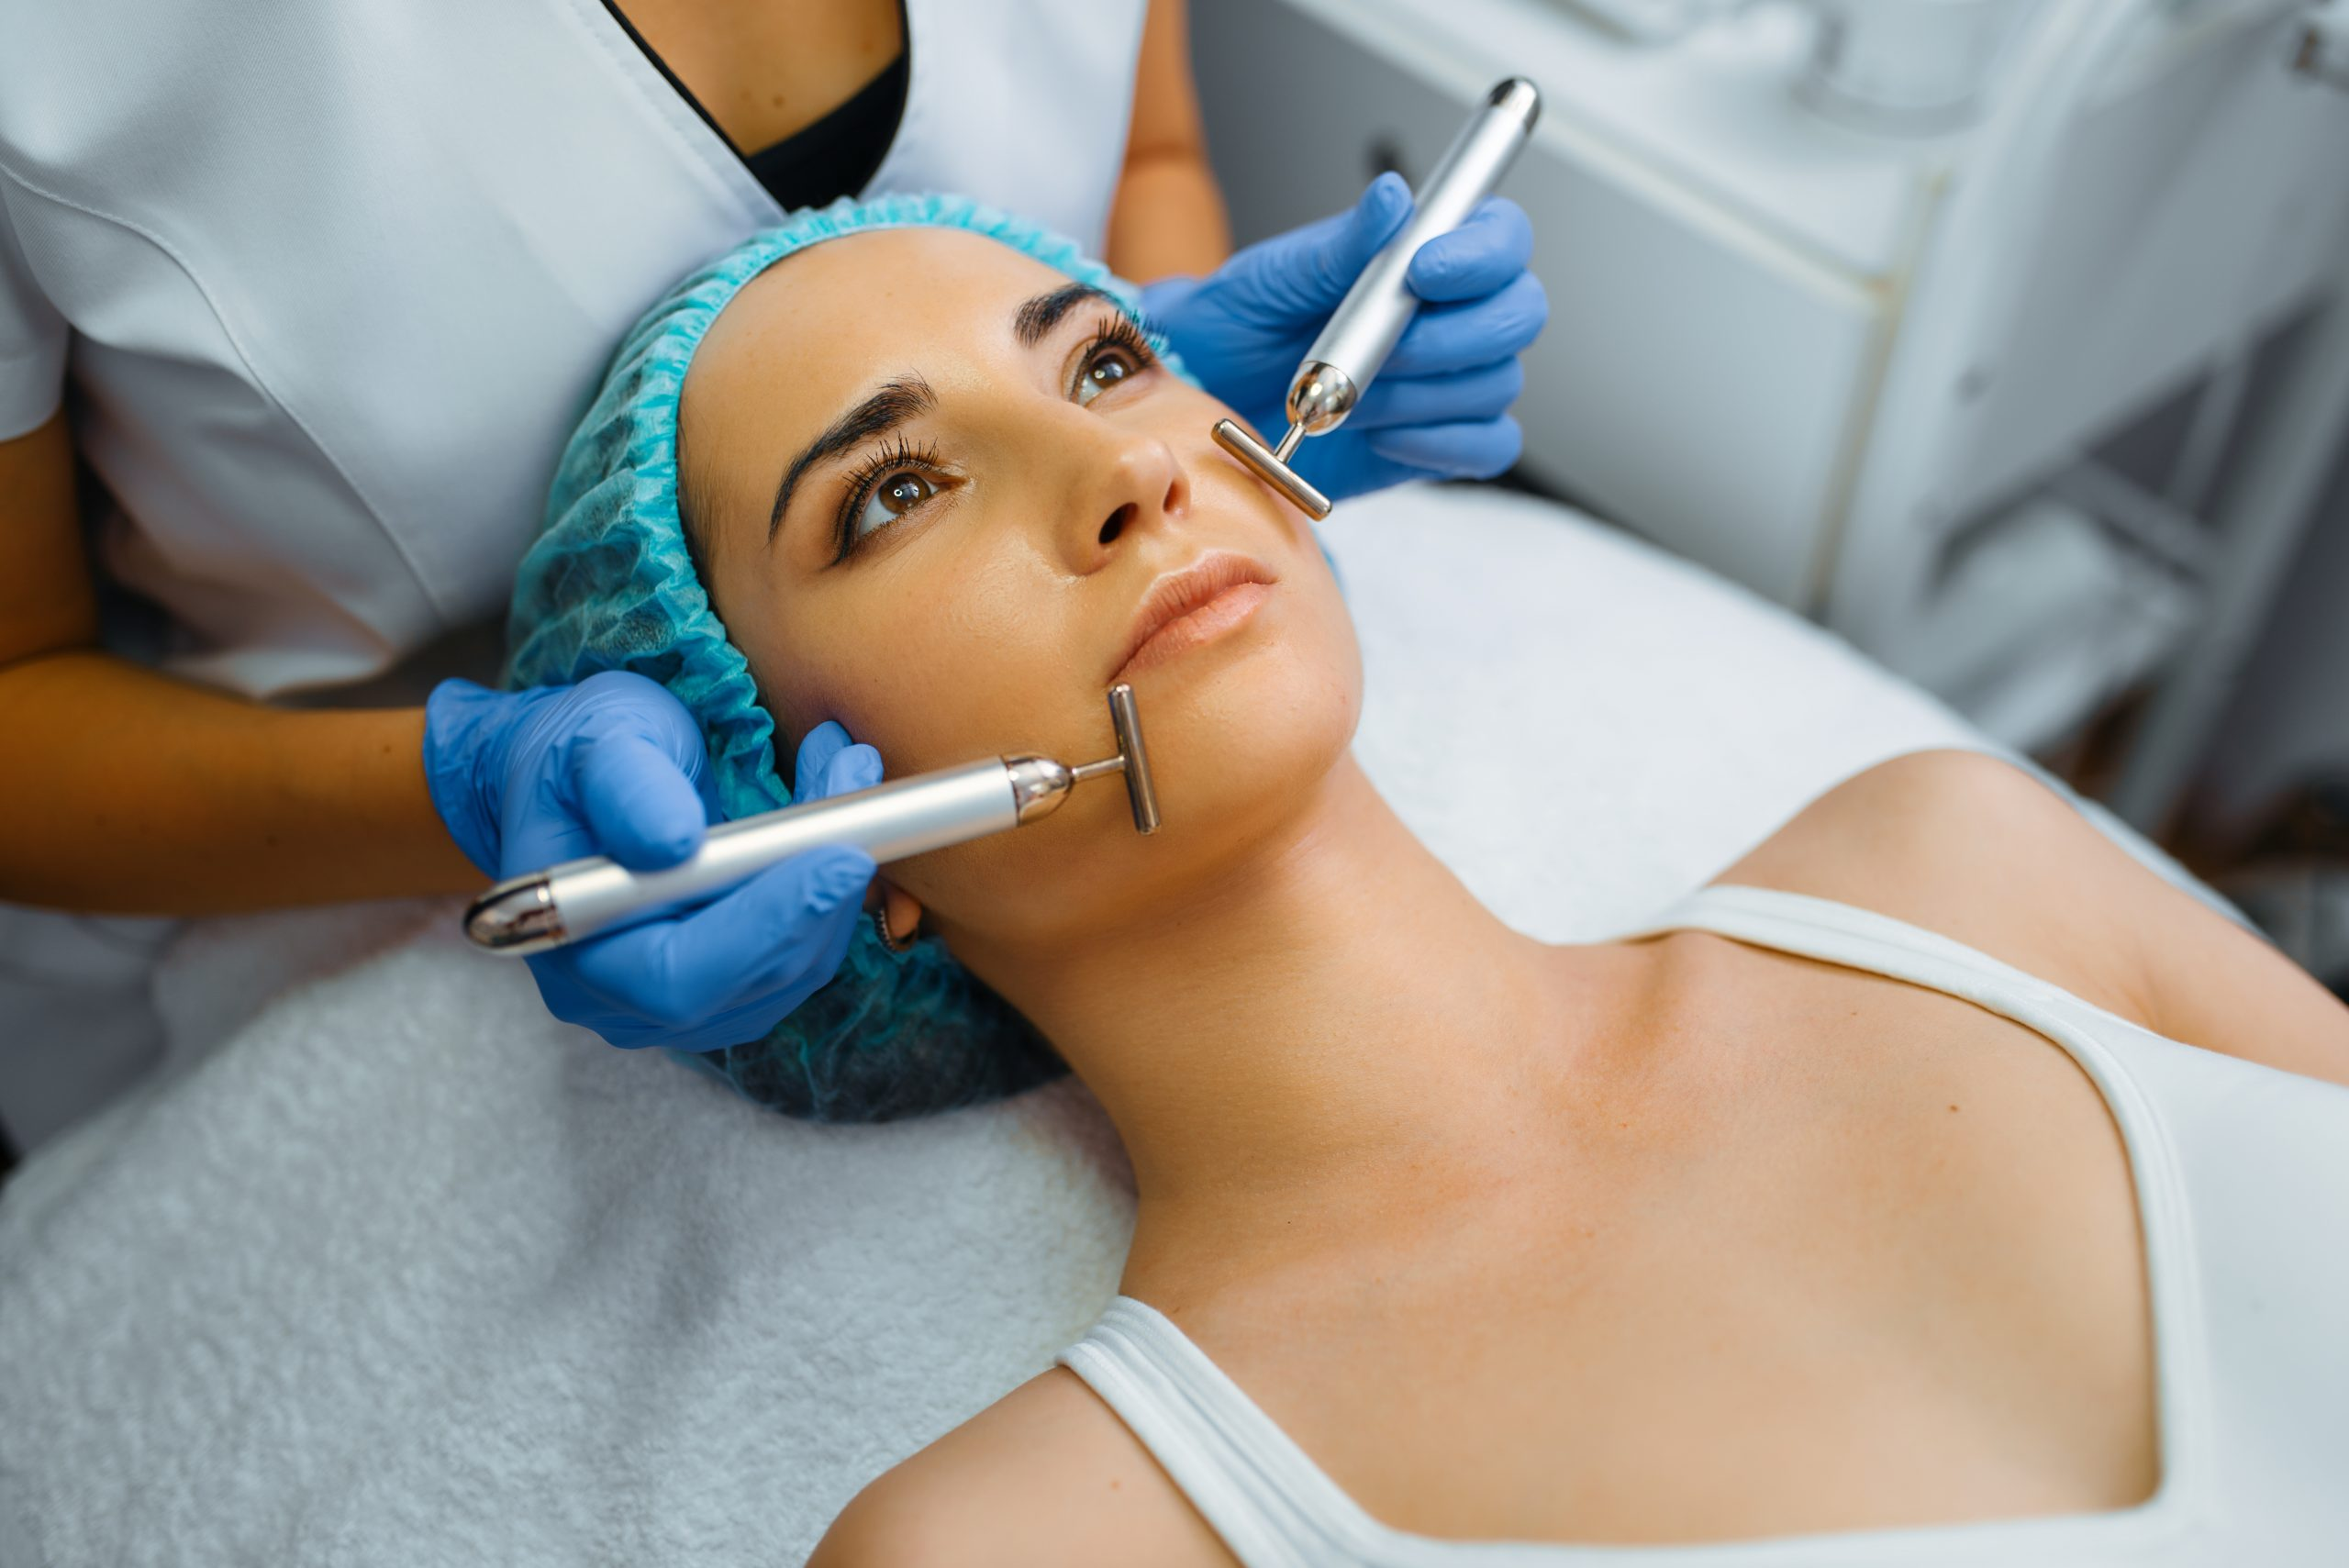 Cosmetician smoothes face of female patient